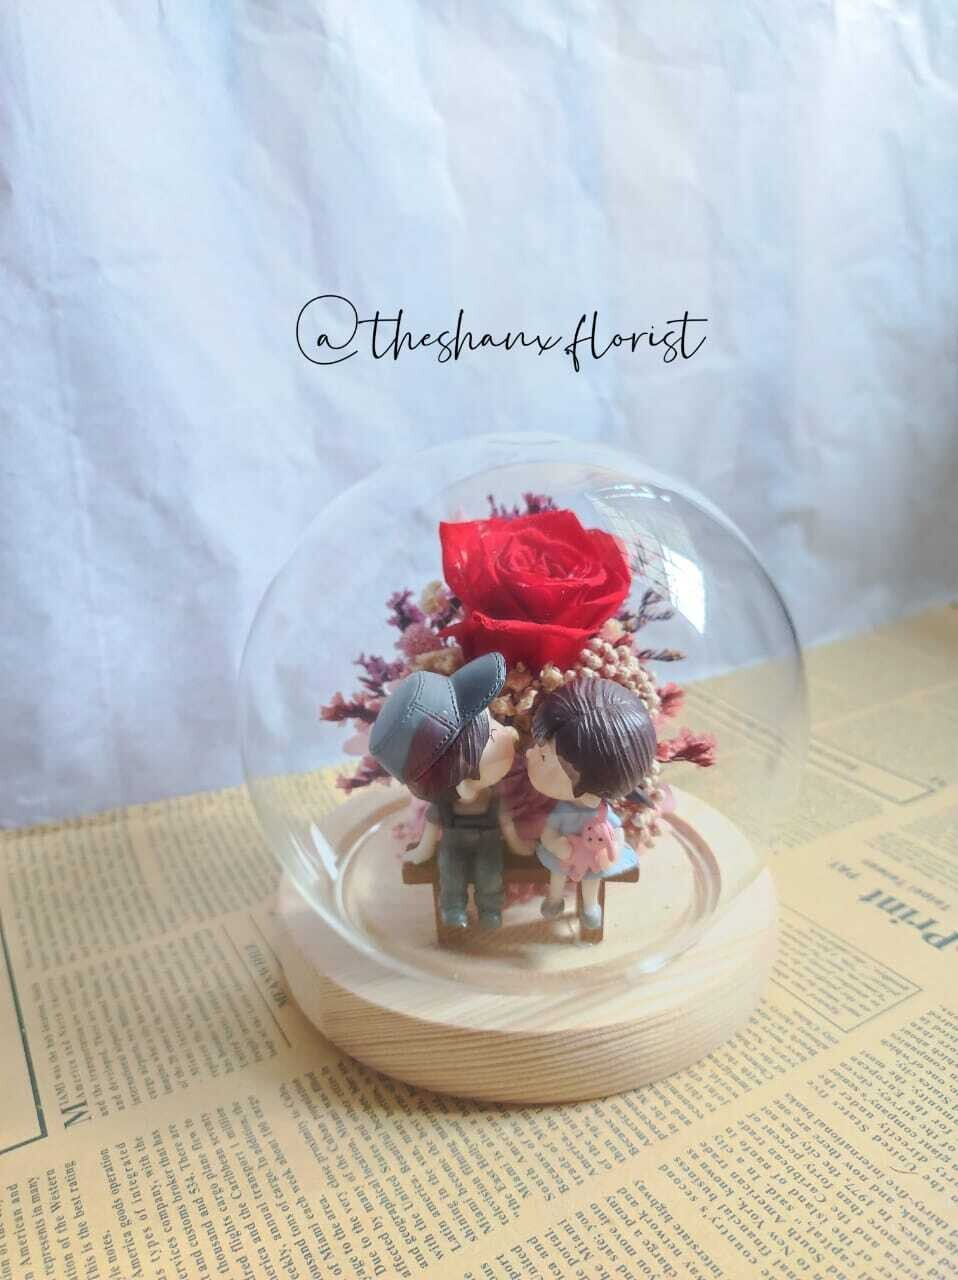 Couple Series Preserved Flower Glass Globe(without LED light) (By: The Shanx Florist from Melaka)